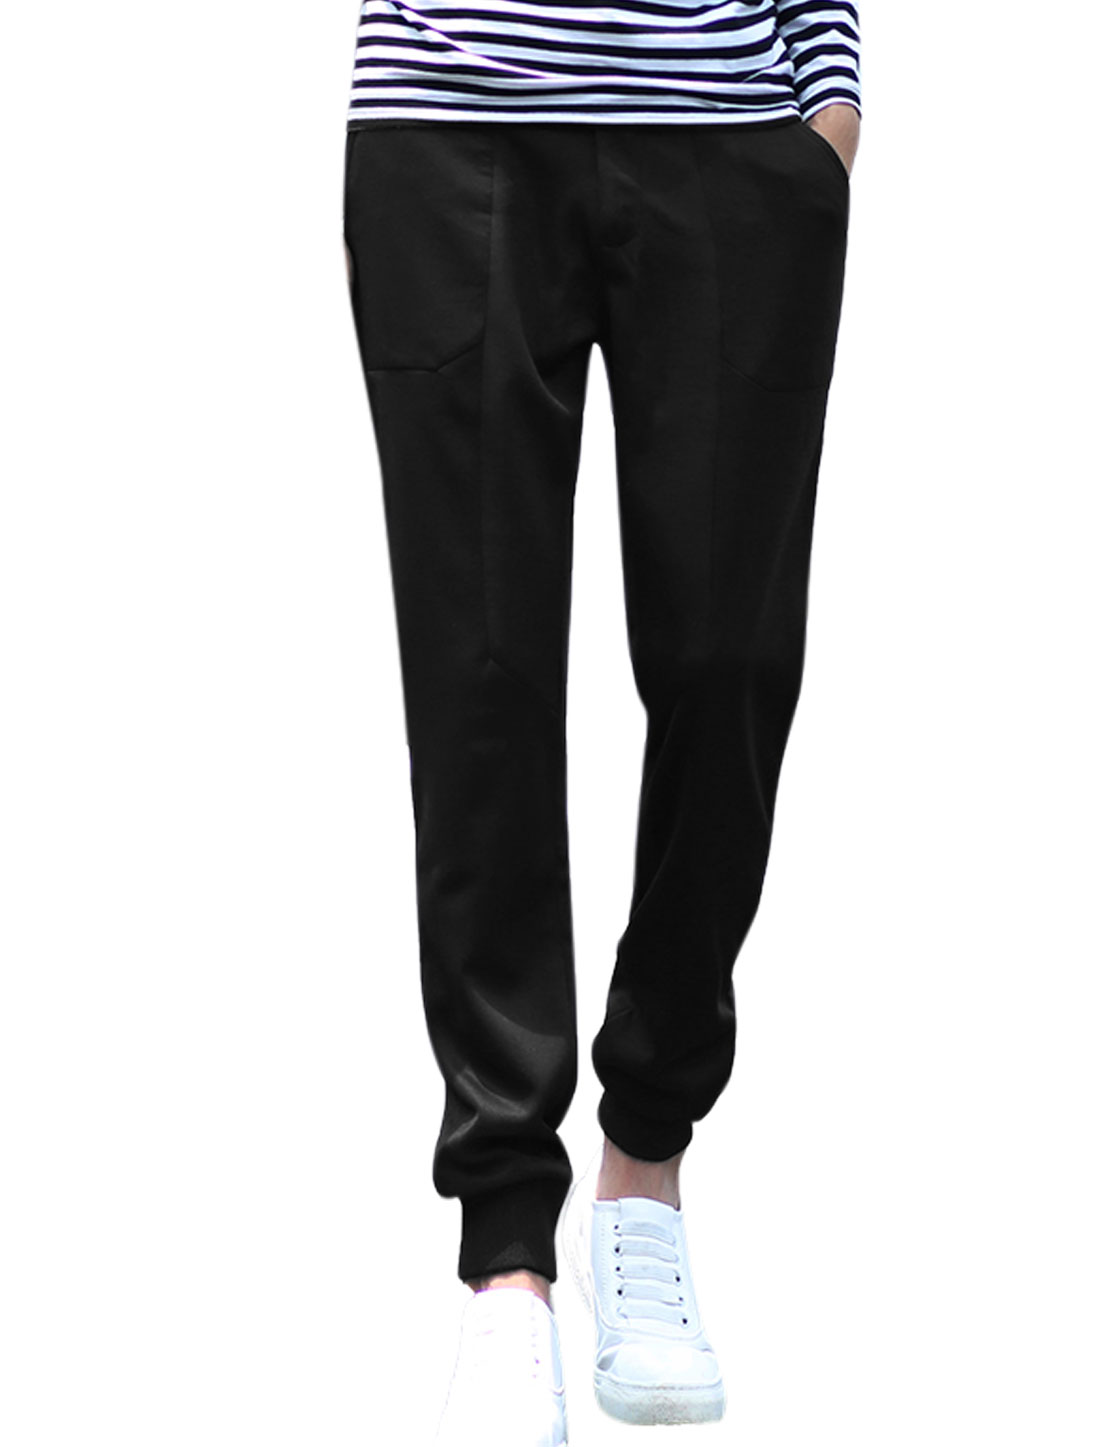 Men Zip Fly Ribbed Cuffs Tapered Leisure Pants Black W32